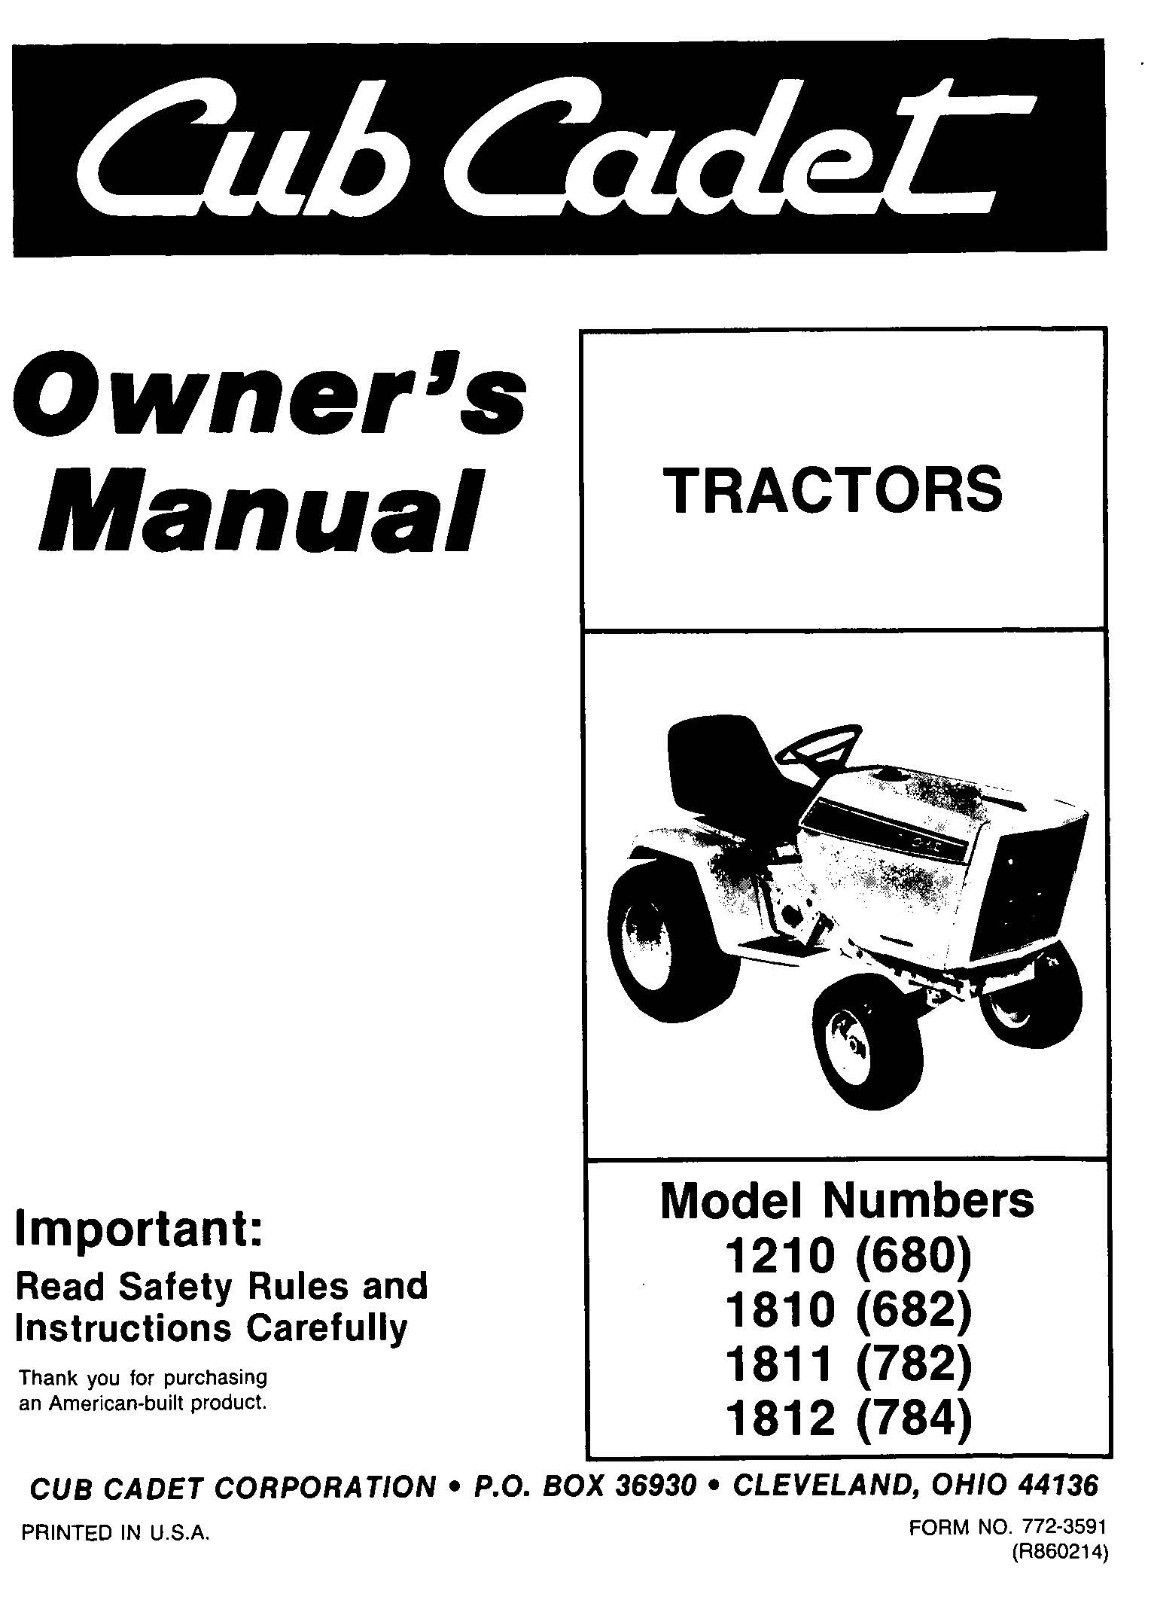 Cub Cadet Owners Manual Model No 1210,1810,1811,1812